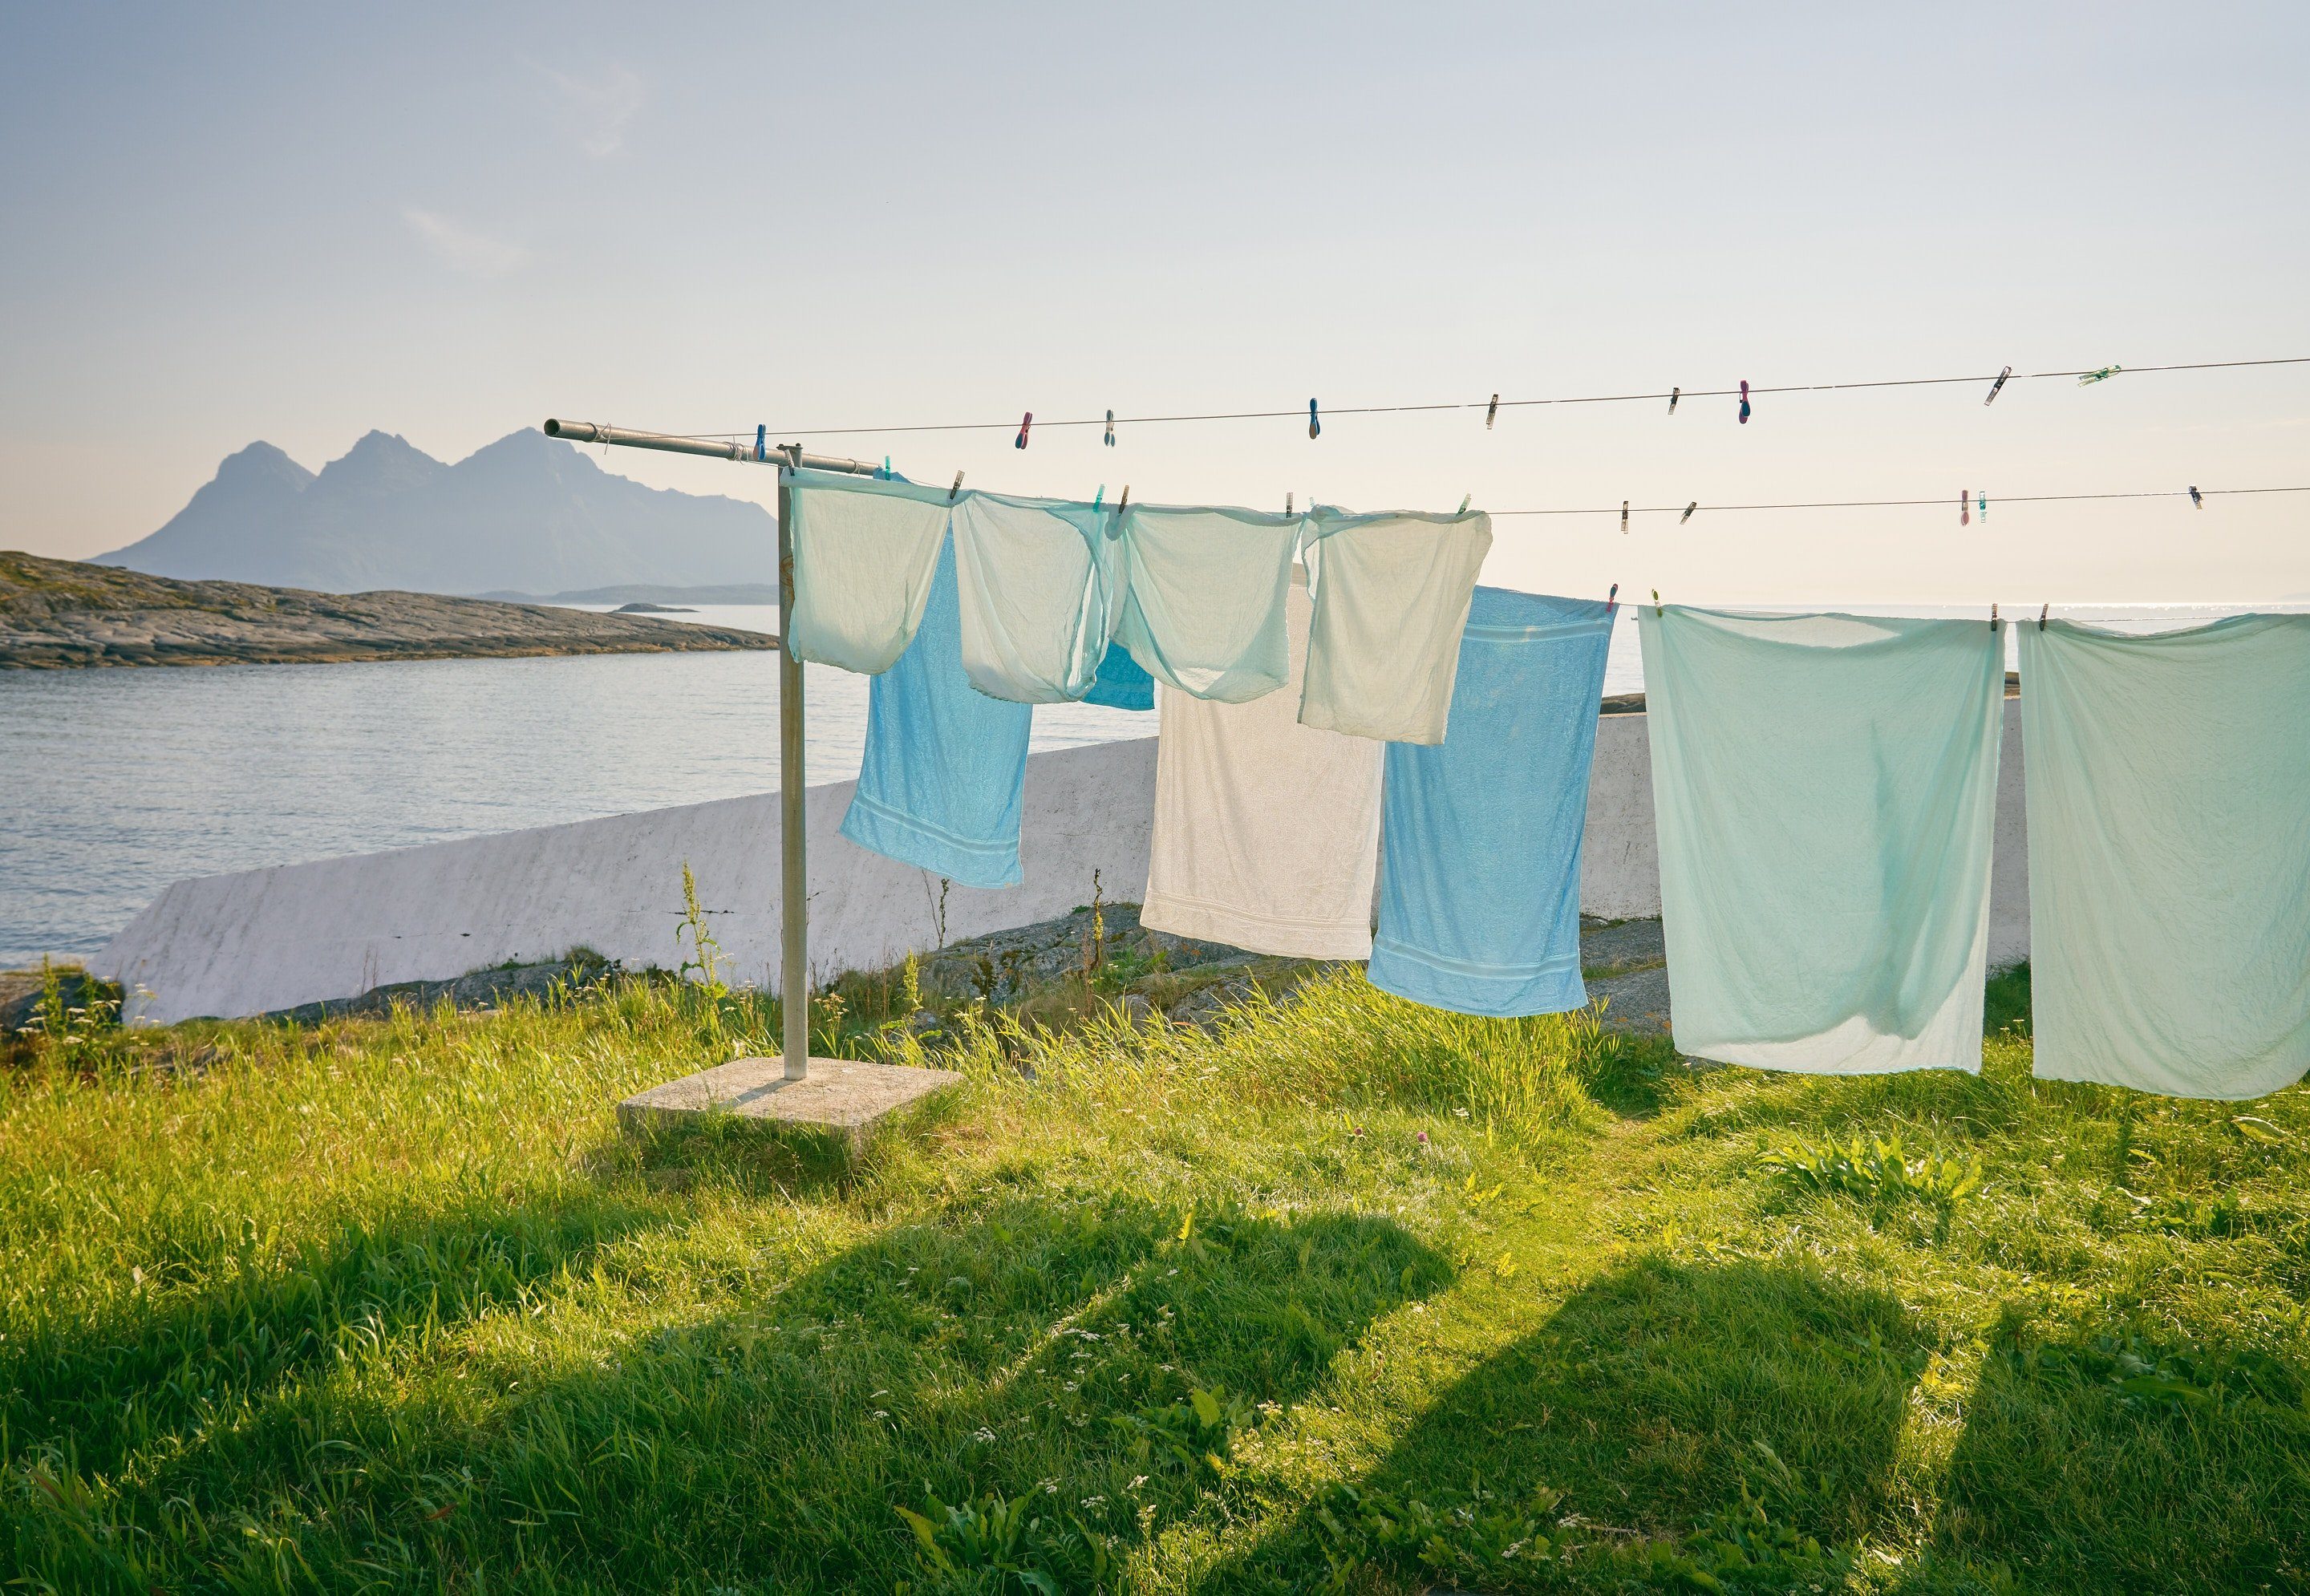 Easy To Make Laundry Detergent Recipes  So You Can Save Money